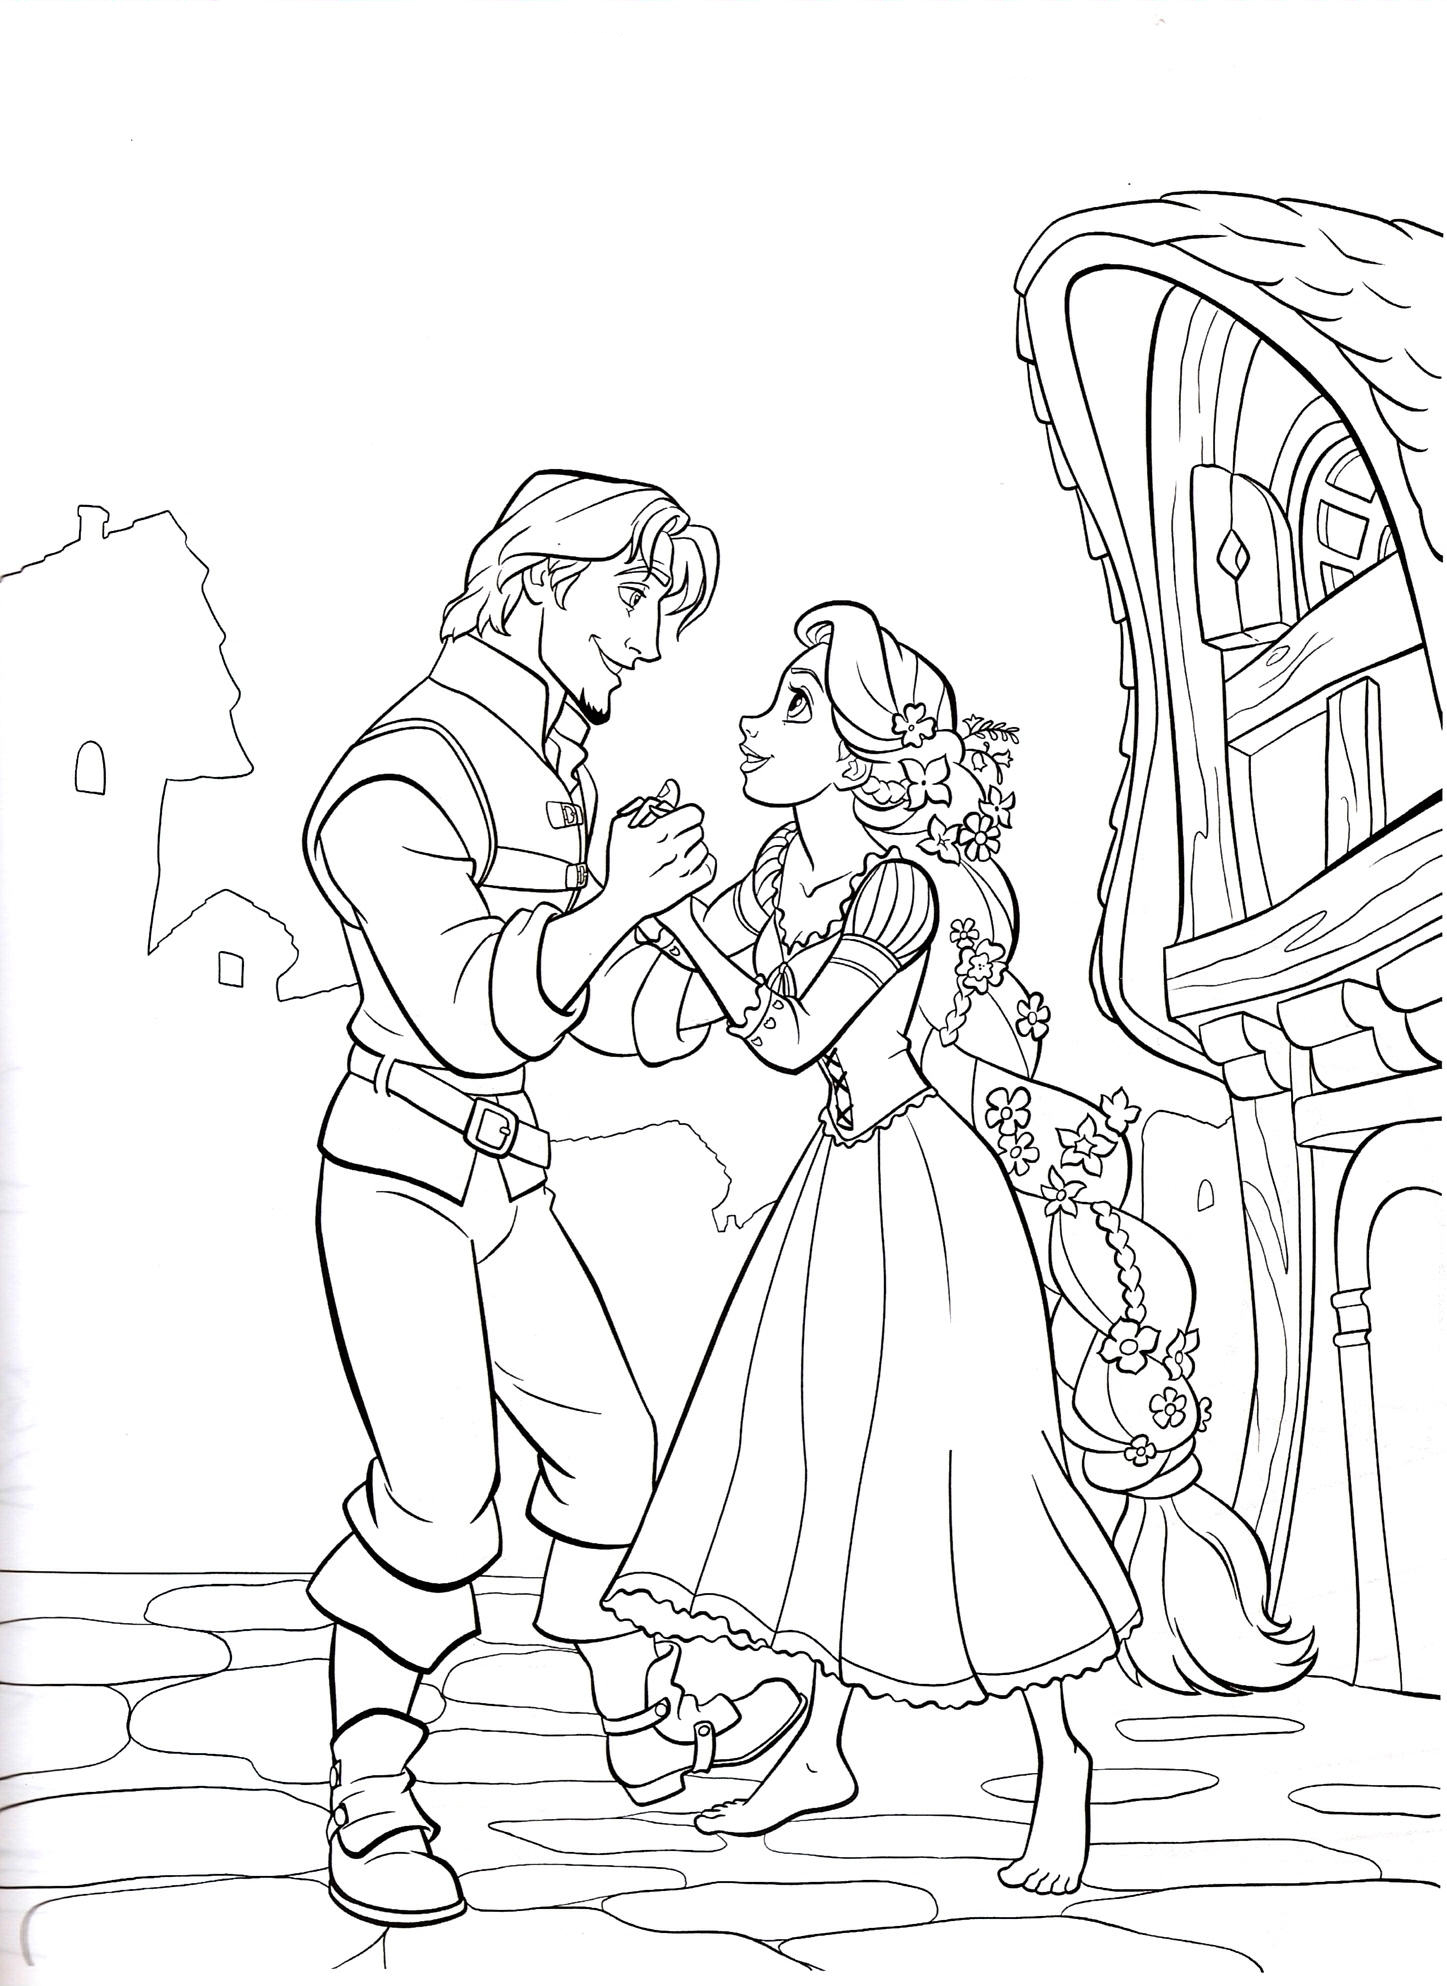 Rapunzel Coloring Pages - Best Coloring Pages For Kids